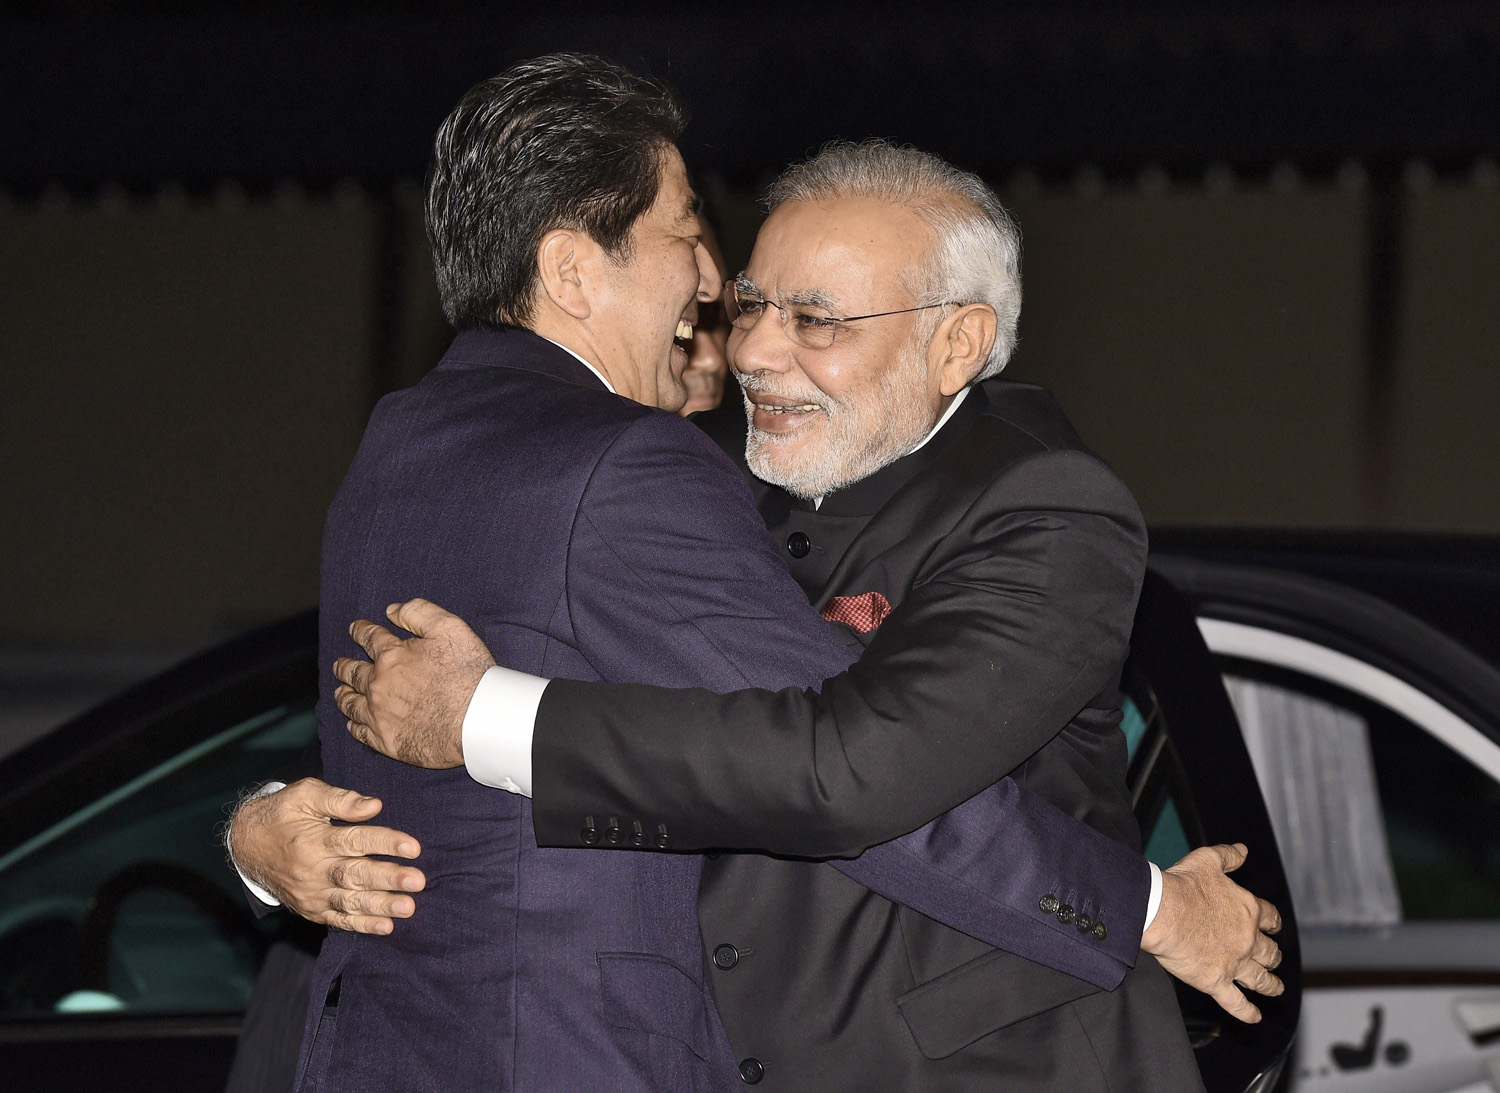 Japan's Prime Minister Shinzo Abe hugs Modi upon                      his arrival at the state guesthouse in the Japanese city of Kyoto